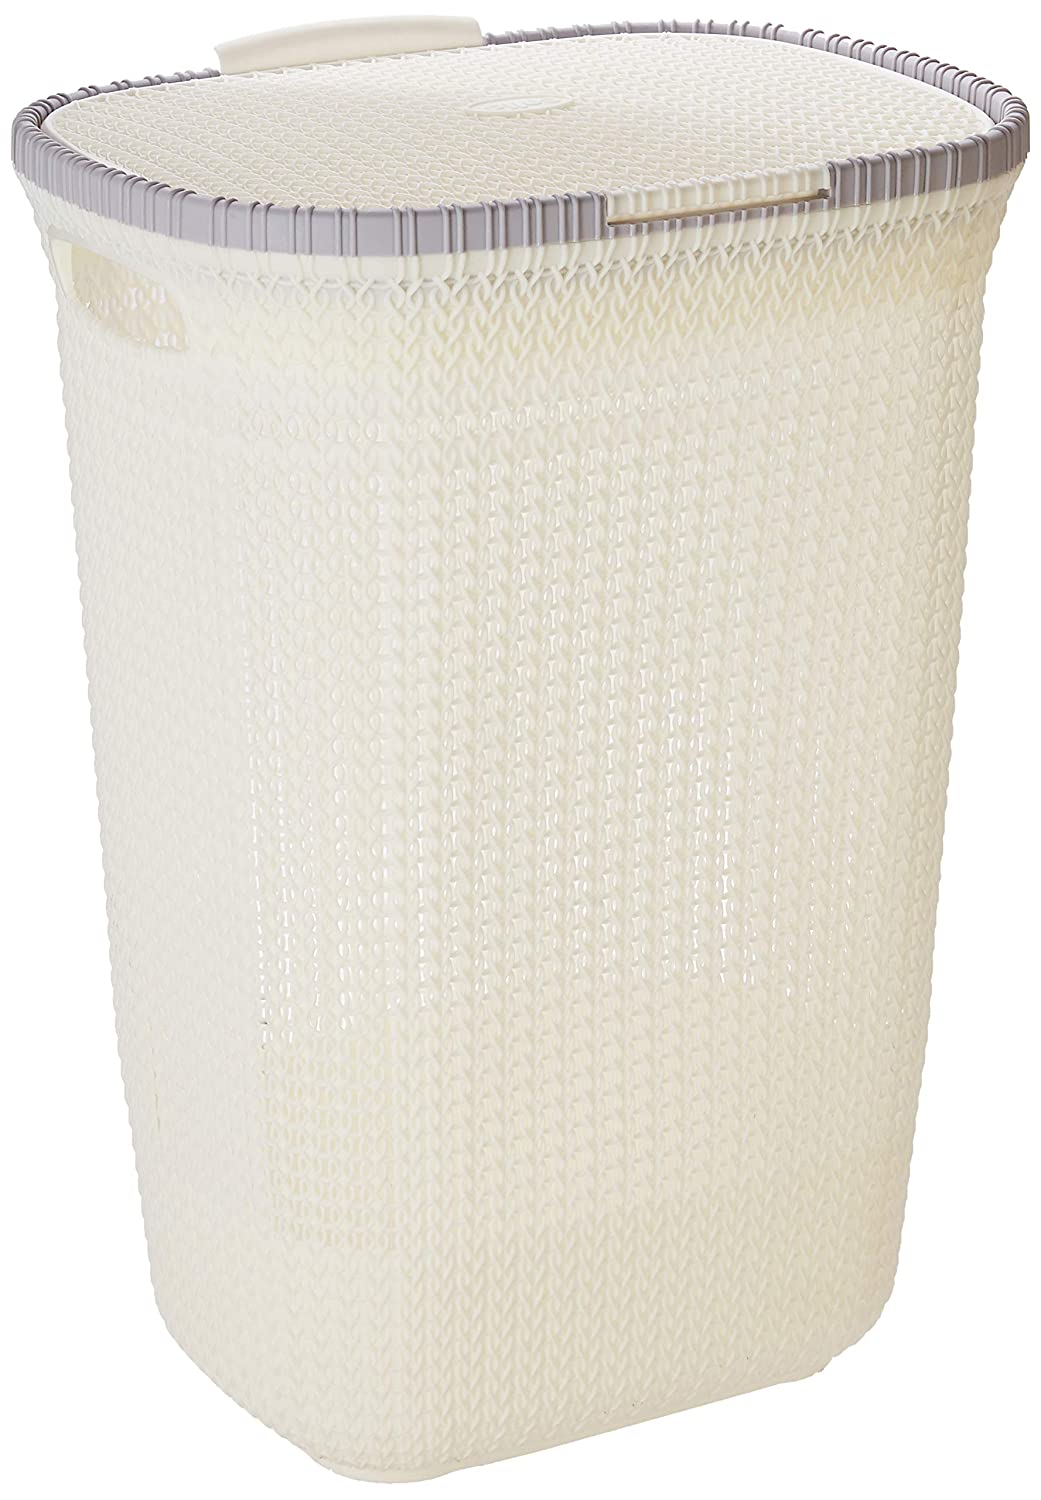 Cello Creta Plastic Laundry Basket With Lid, Off White And Light Grey